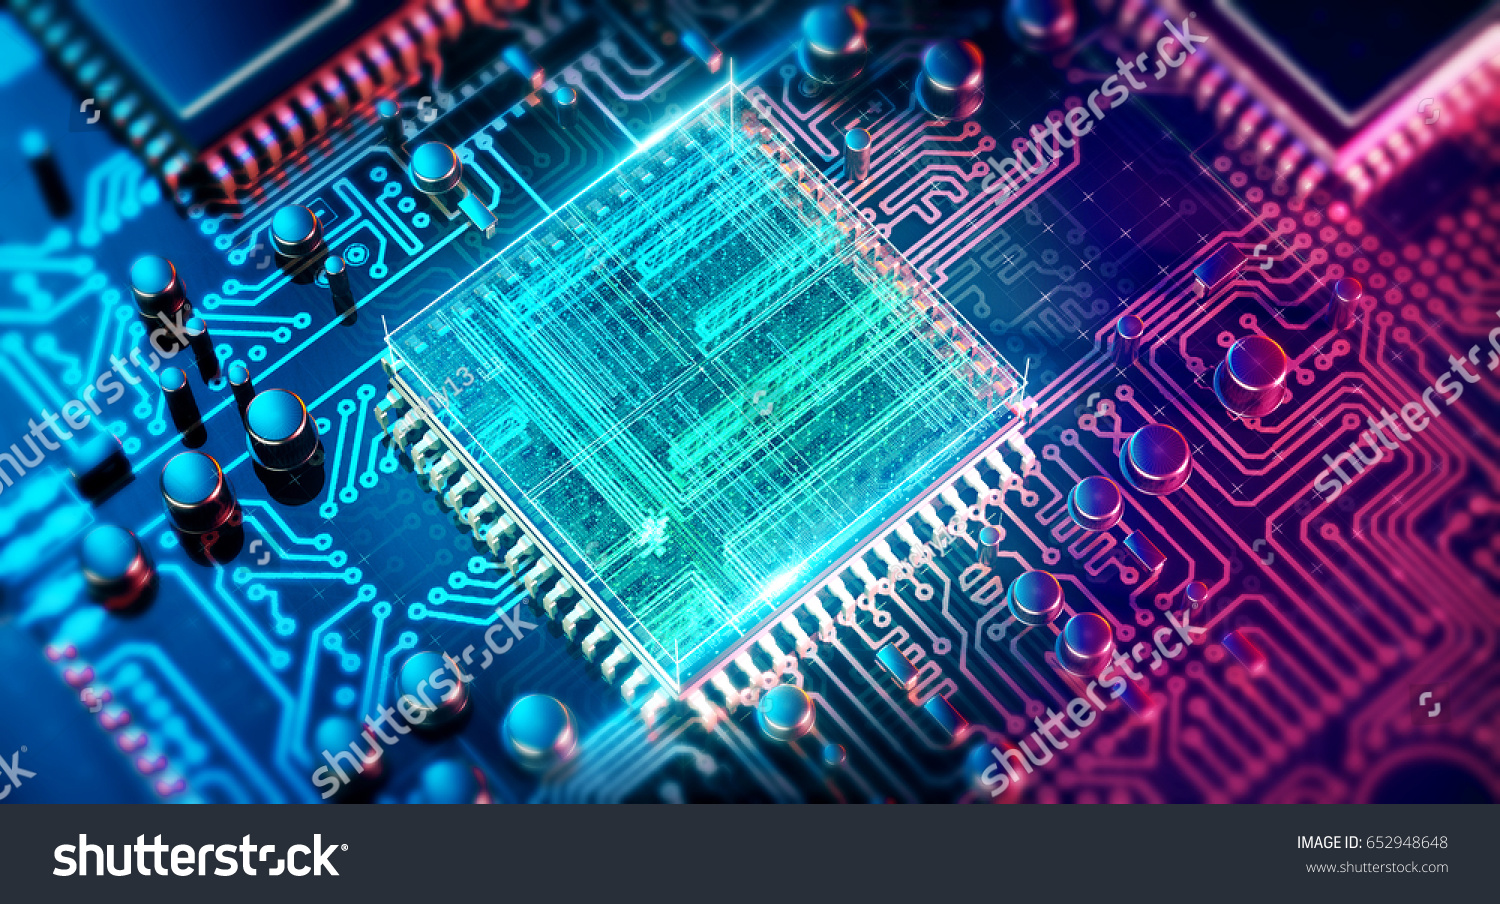 Royalty Free Stock Illustration of Circuit Board Electronic Computer ...